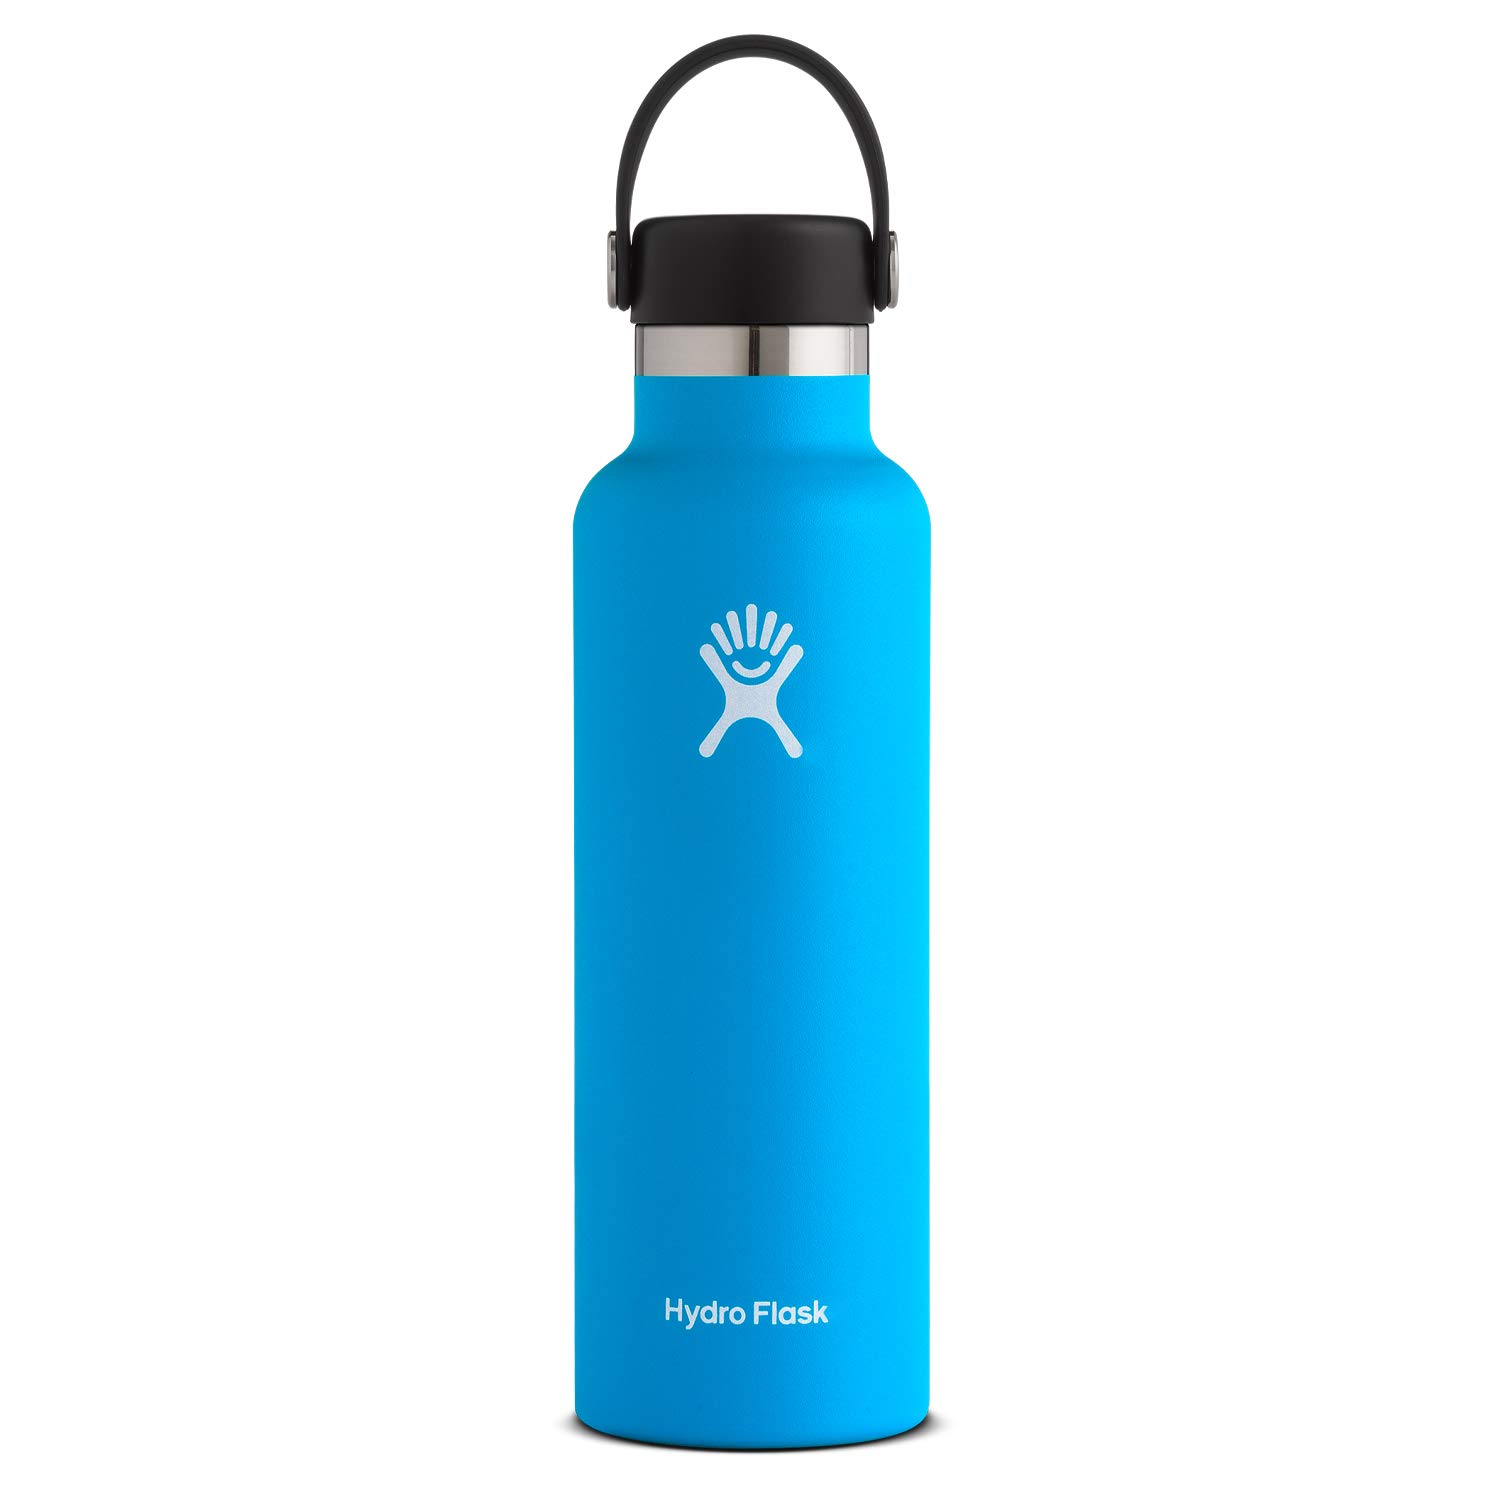 Hydro Flask Standard Mouth Water Bottle, Flex Cap - 21 oz, Pacific by Hydro Flask